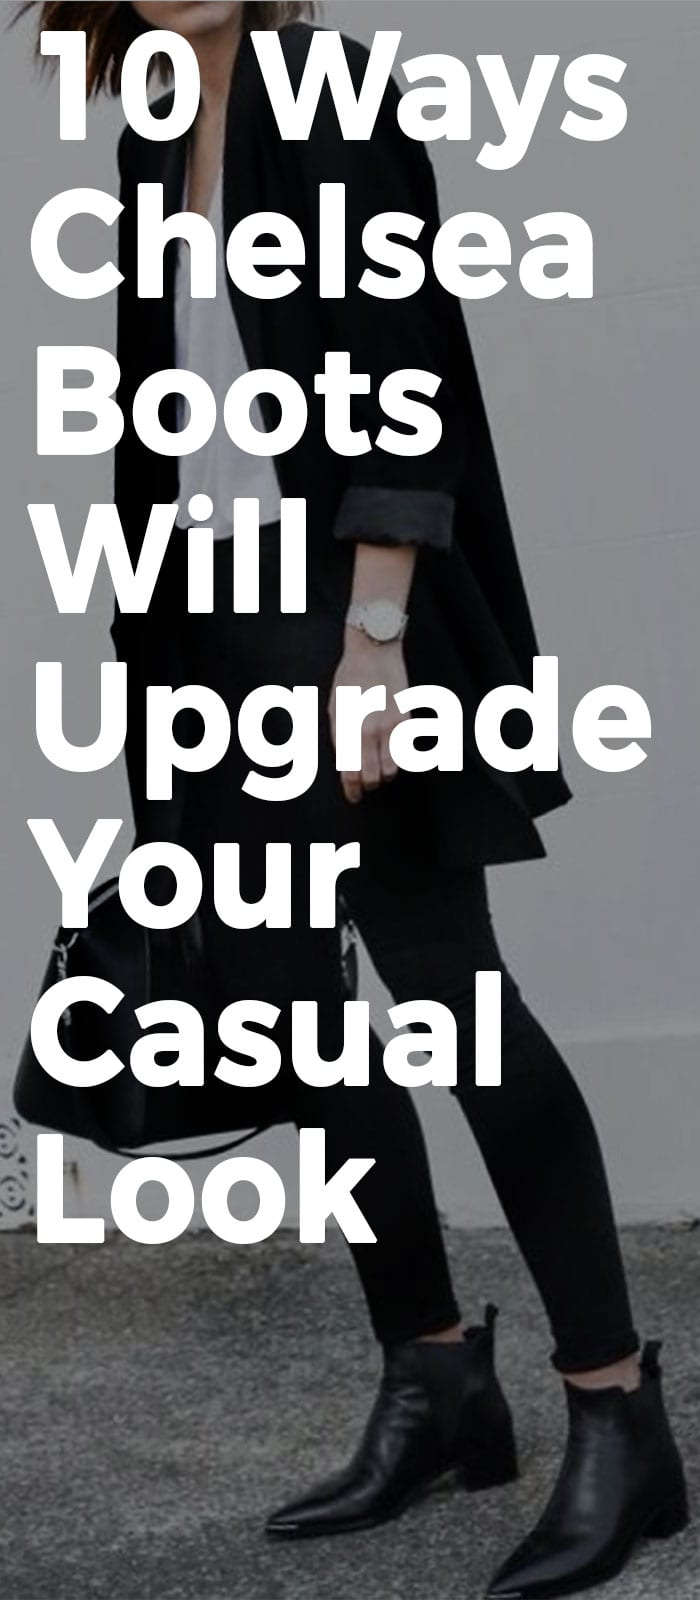 10 Ways Chelsea Boots Will Upgrade Your Casual Look.